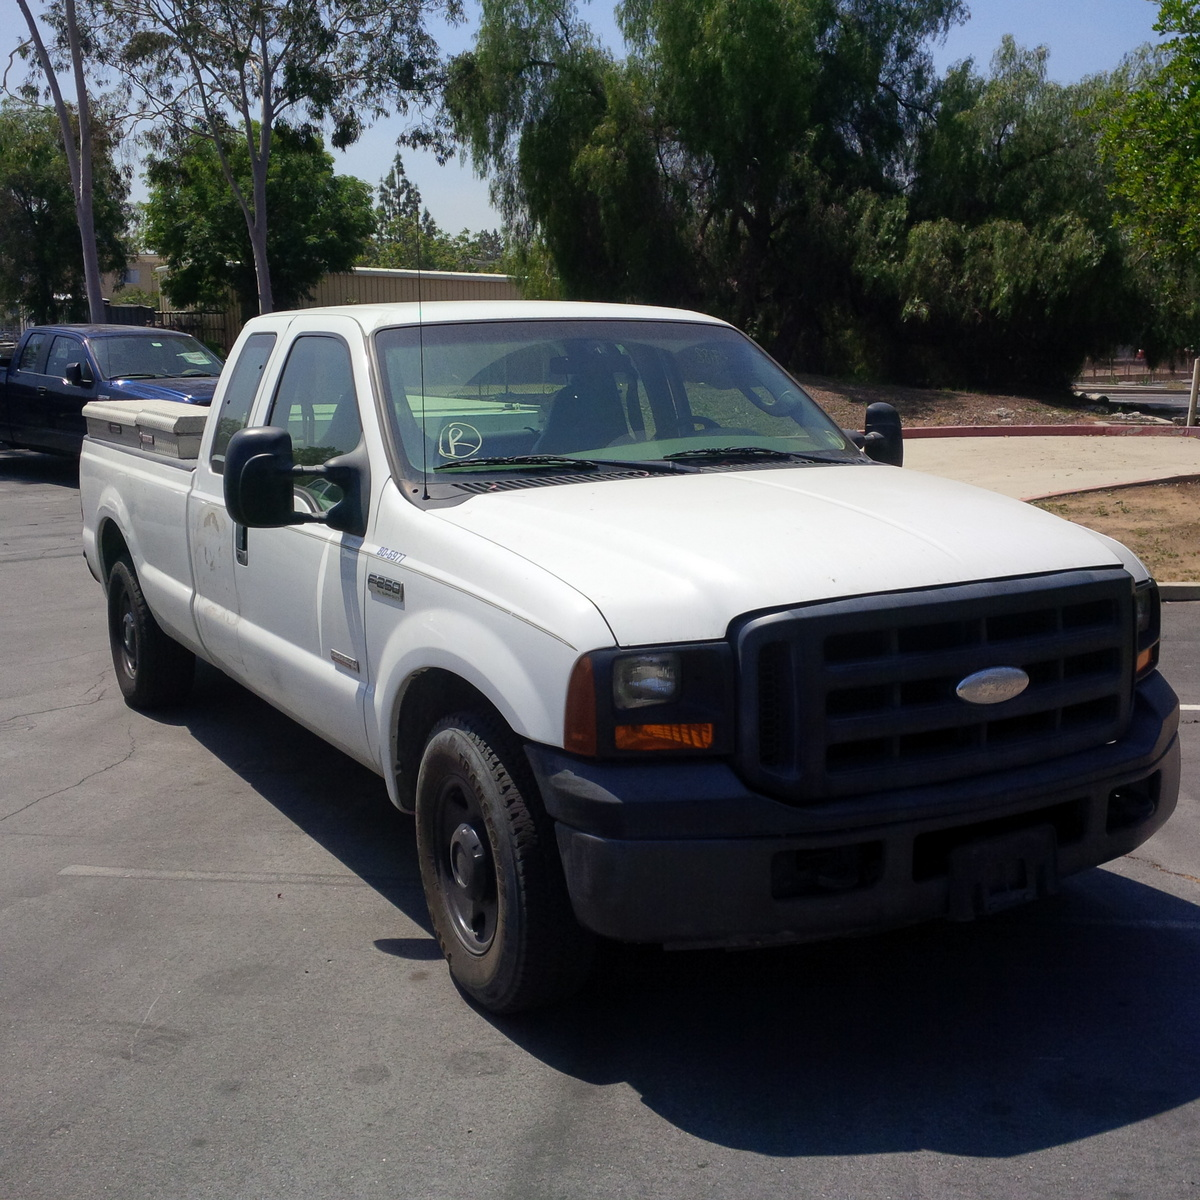 2007 Ford F-250 Super Duty